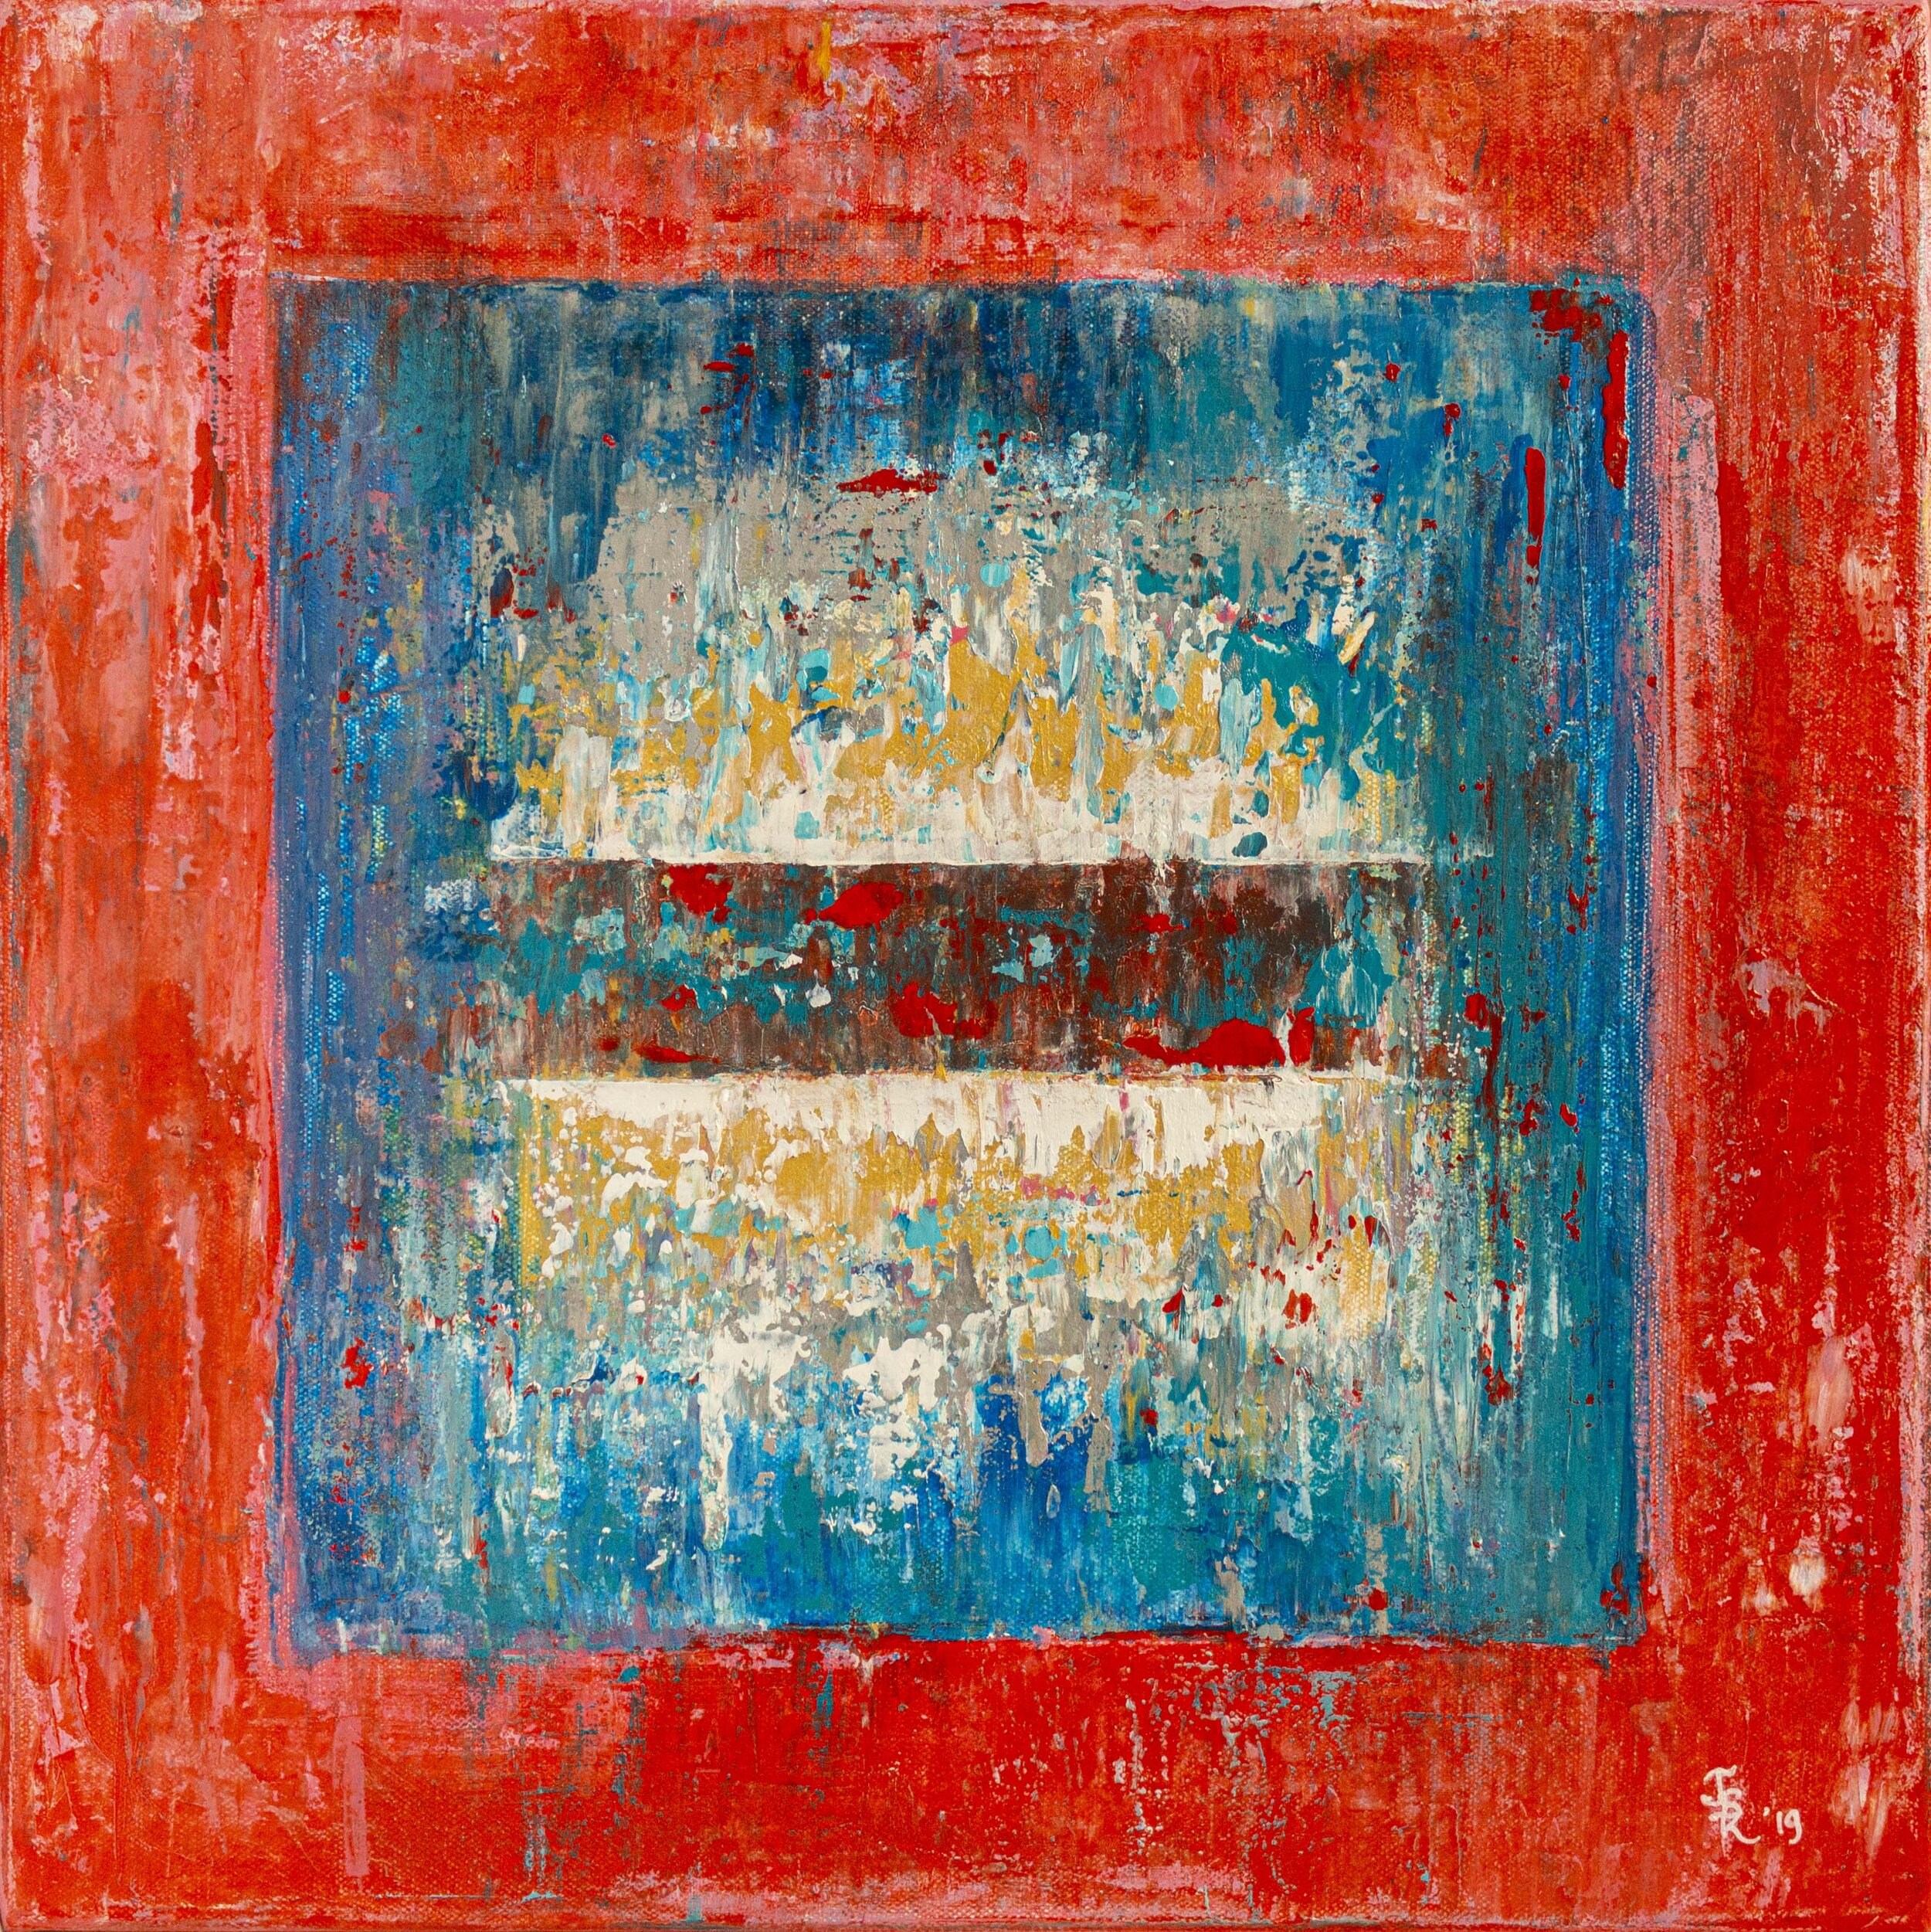 Ice Cube Small Red & Blue, 2019